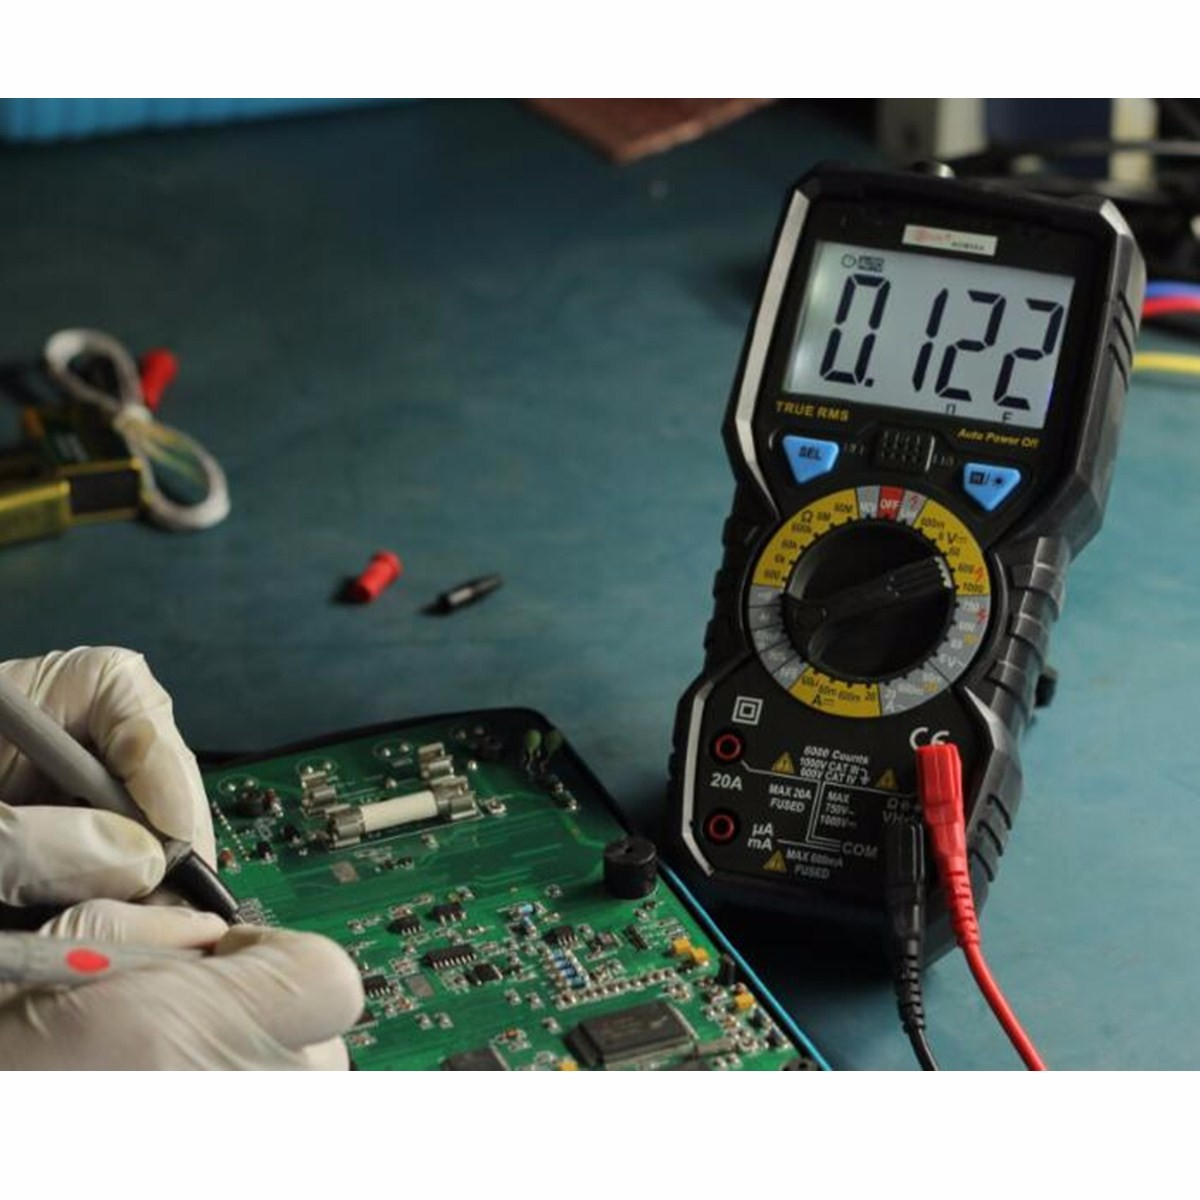 Liumy Digital Multimeter Sale Online Wholesale Multifunctional Circuit Tester Voltage Detector Pen Has Provided Guests With More Quality Equipment And A Better Customer Experience To Improve The Of Life